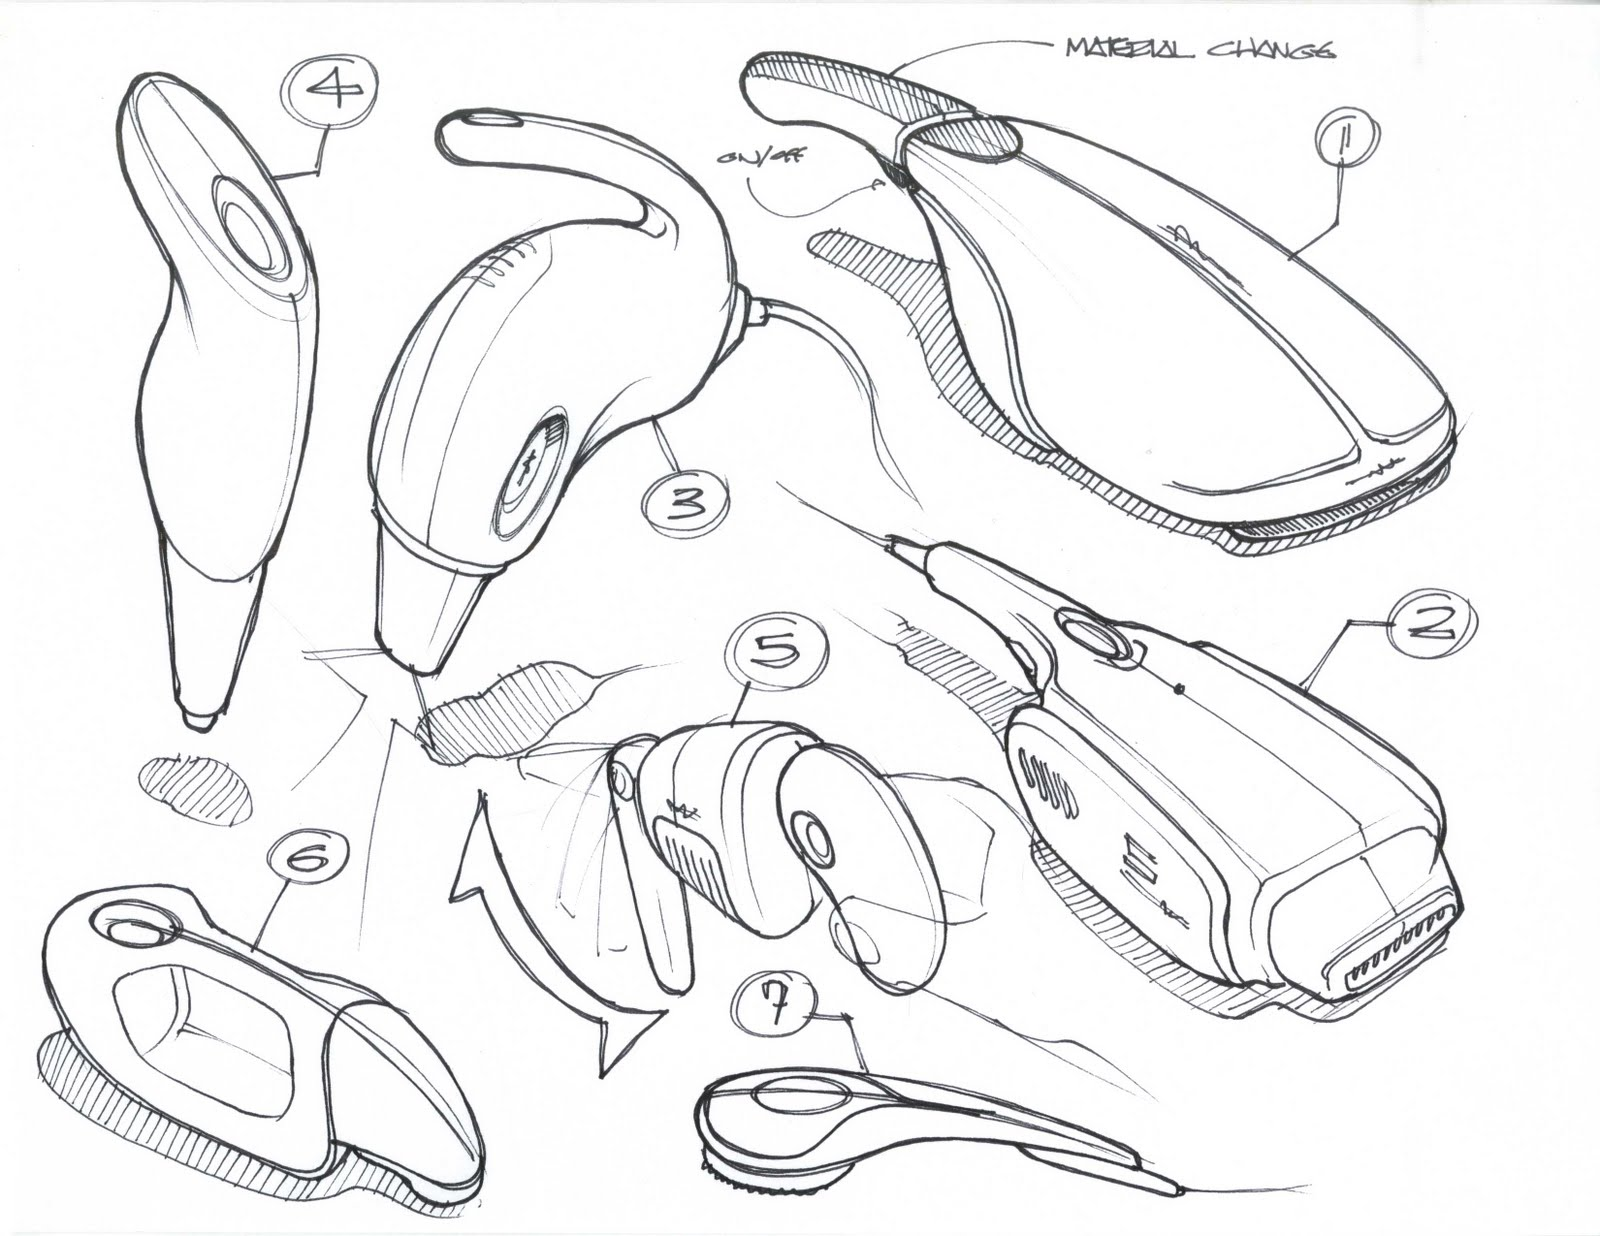 Product Design Line Art : Industrial design sketches on pinterest product sketch